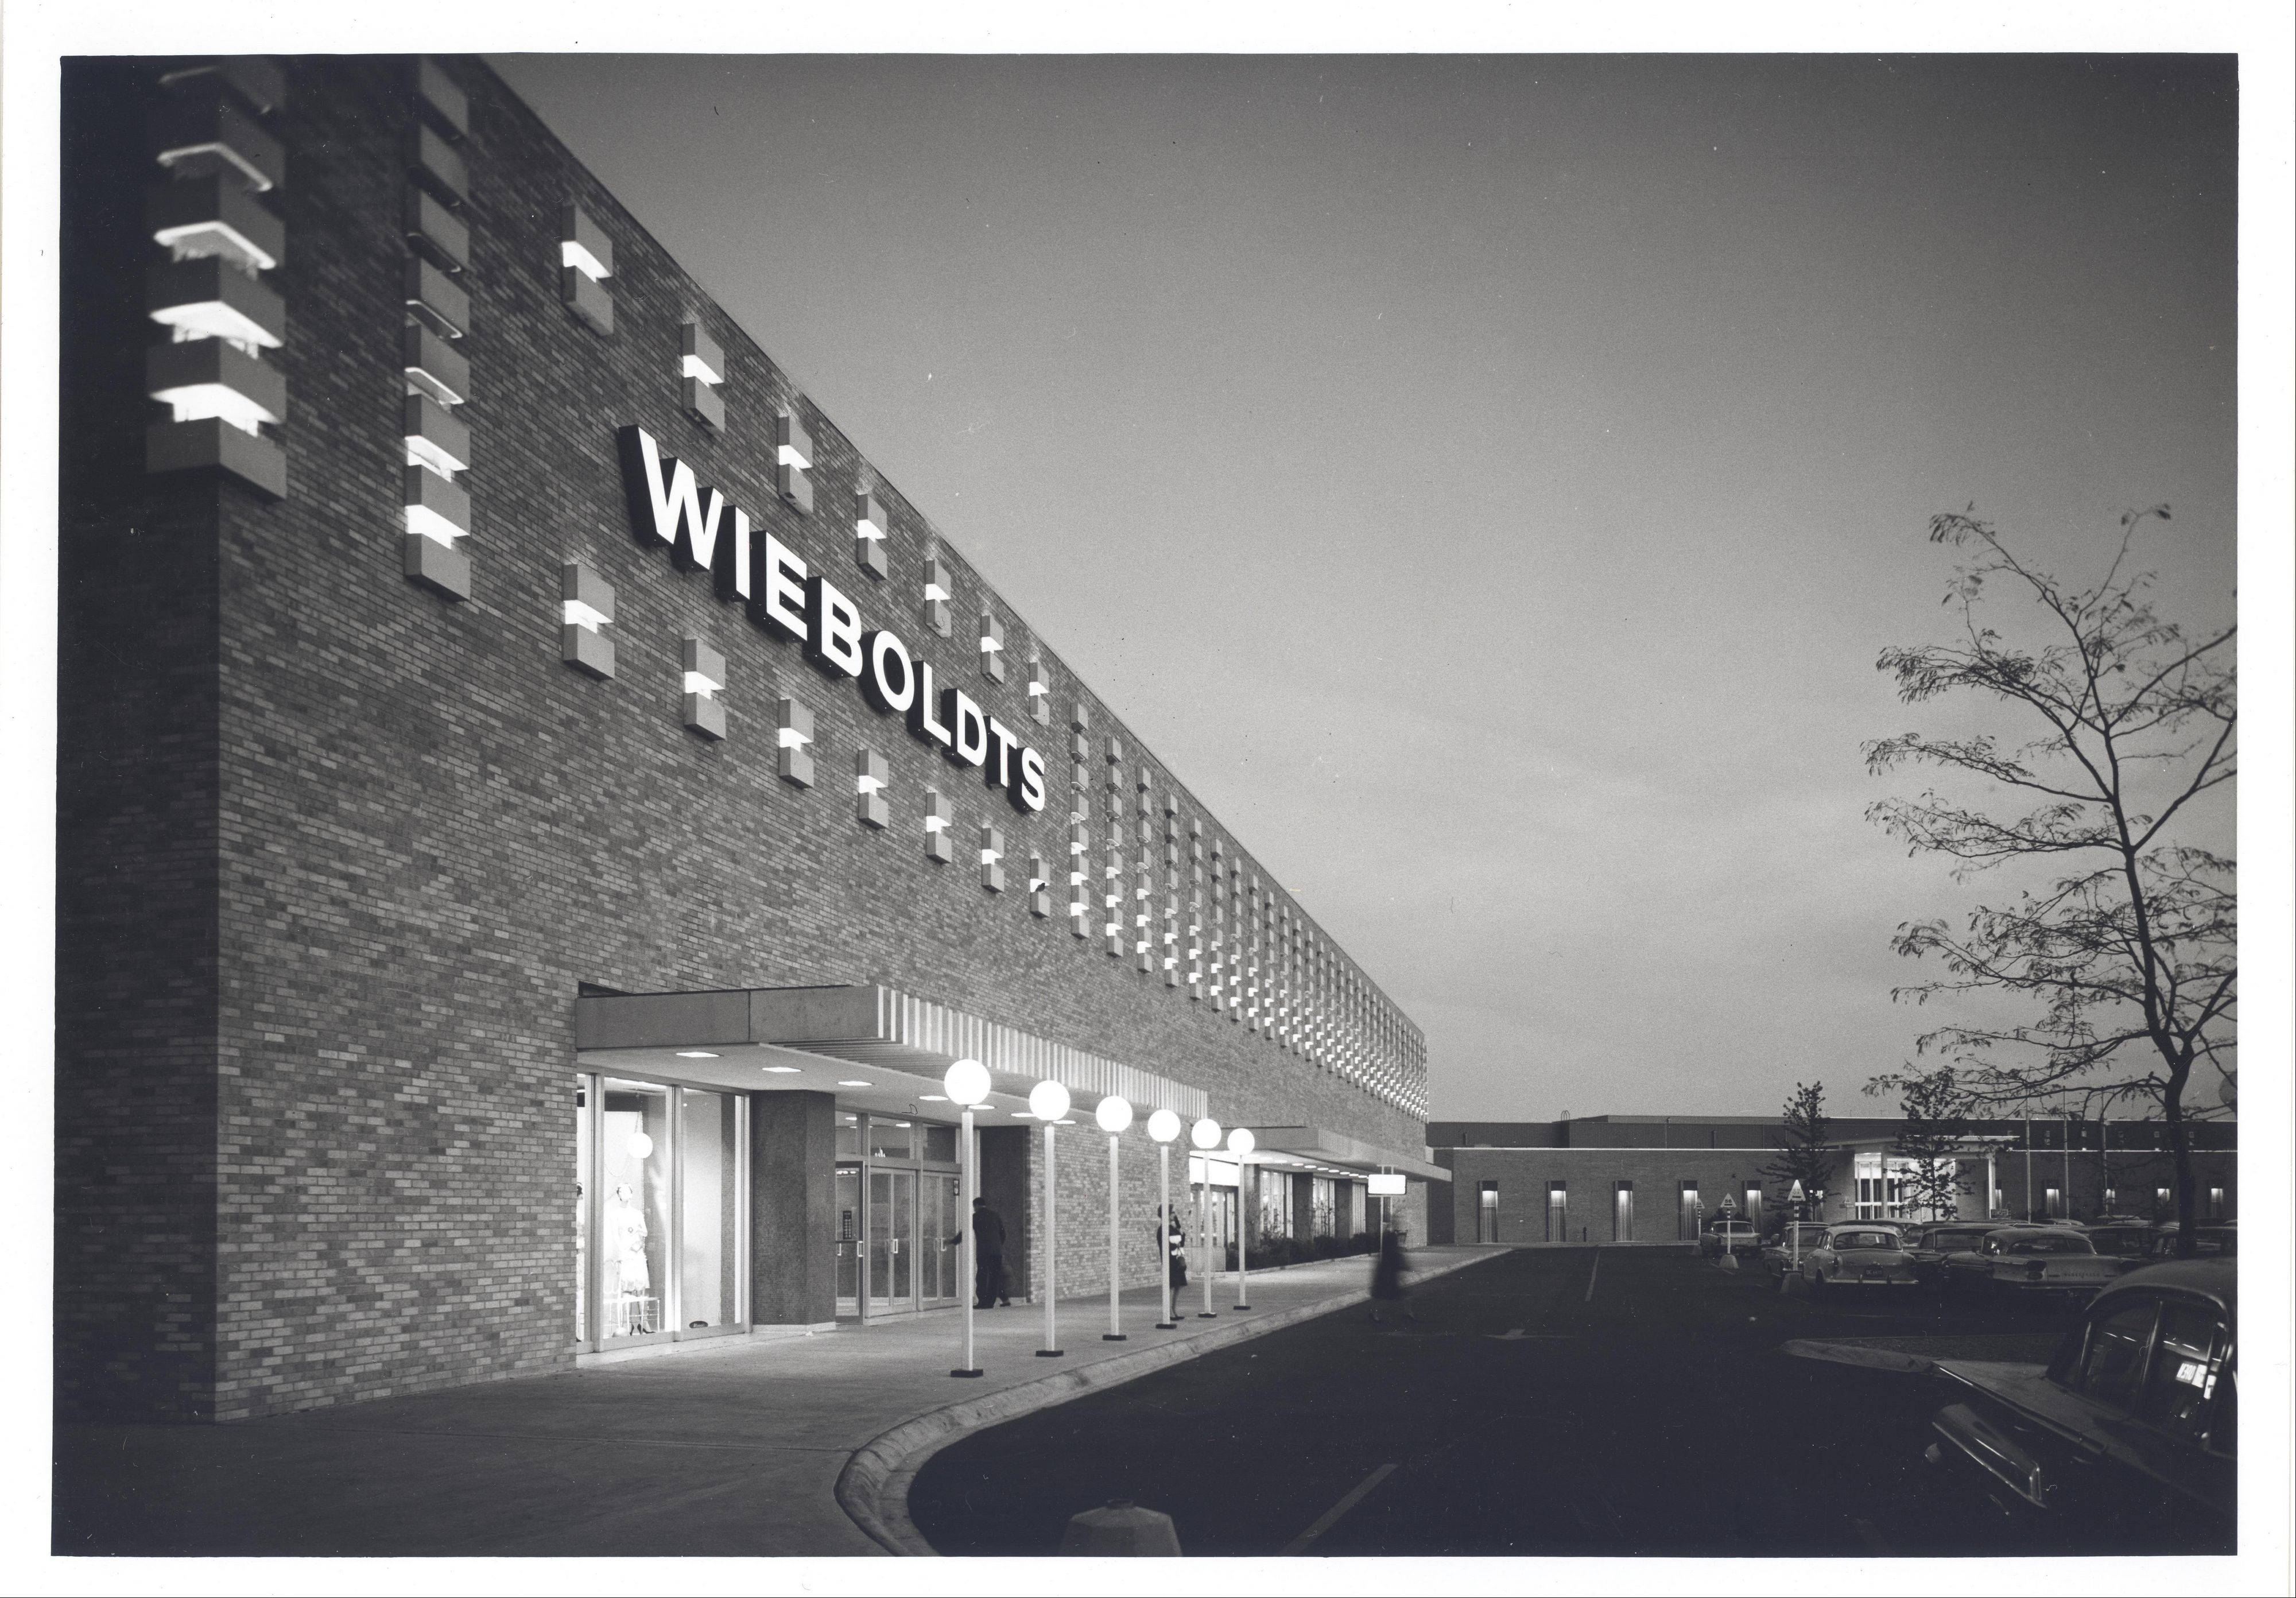 This is a view of the exterior of Wieboldt's department store at Randhurst Shopping Center in Mount Prospect.